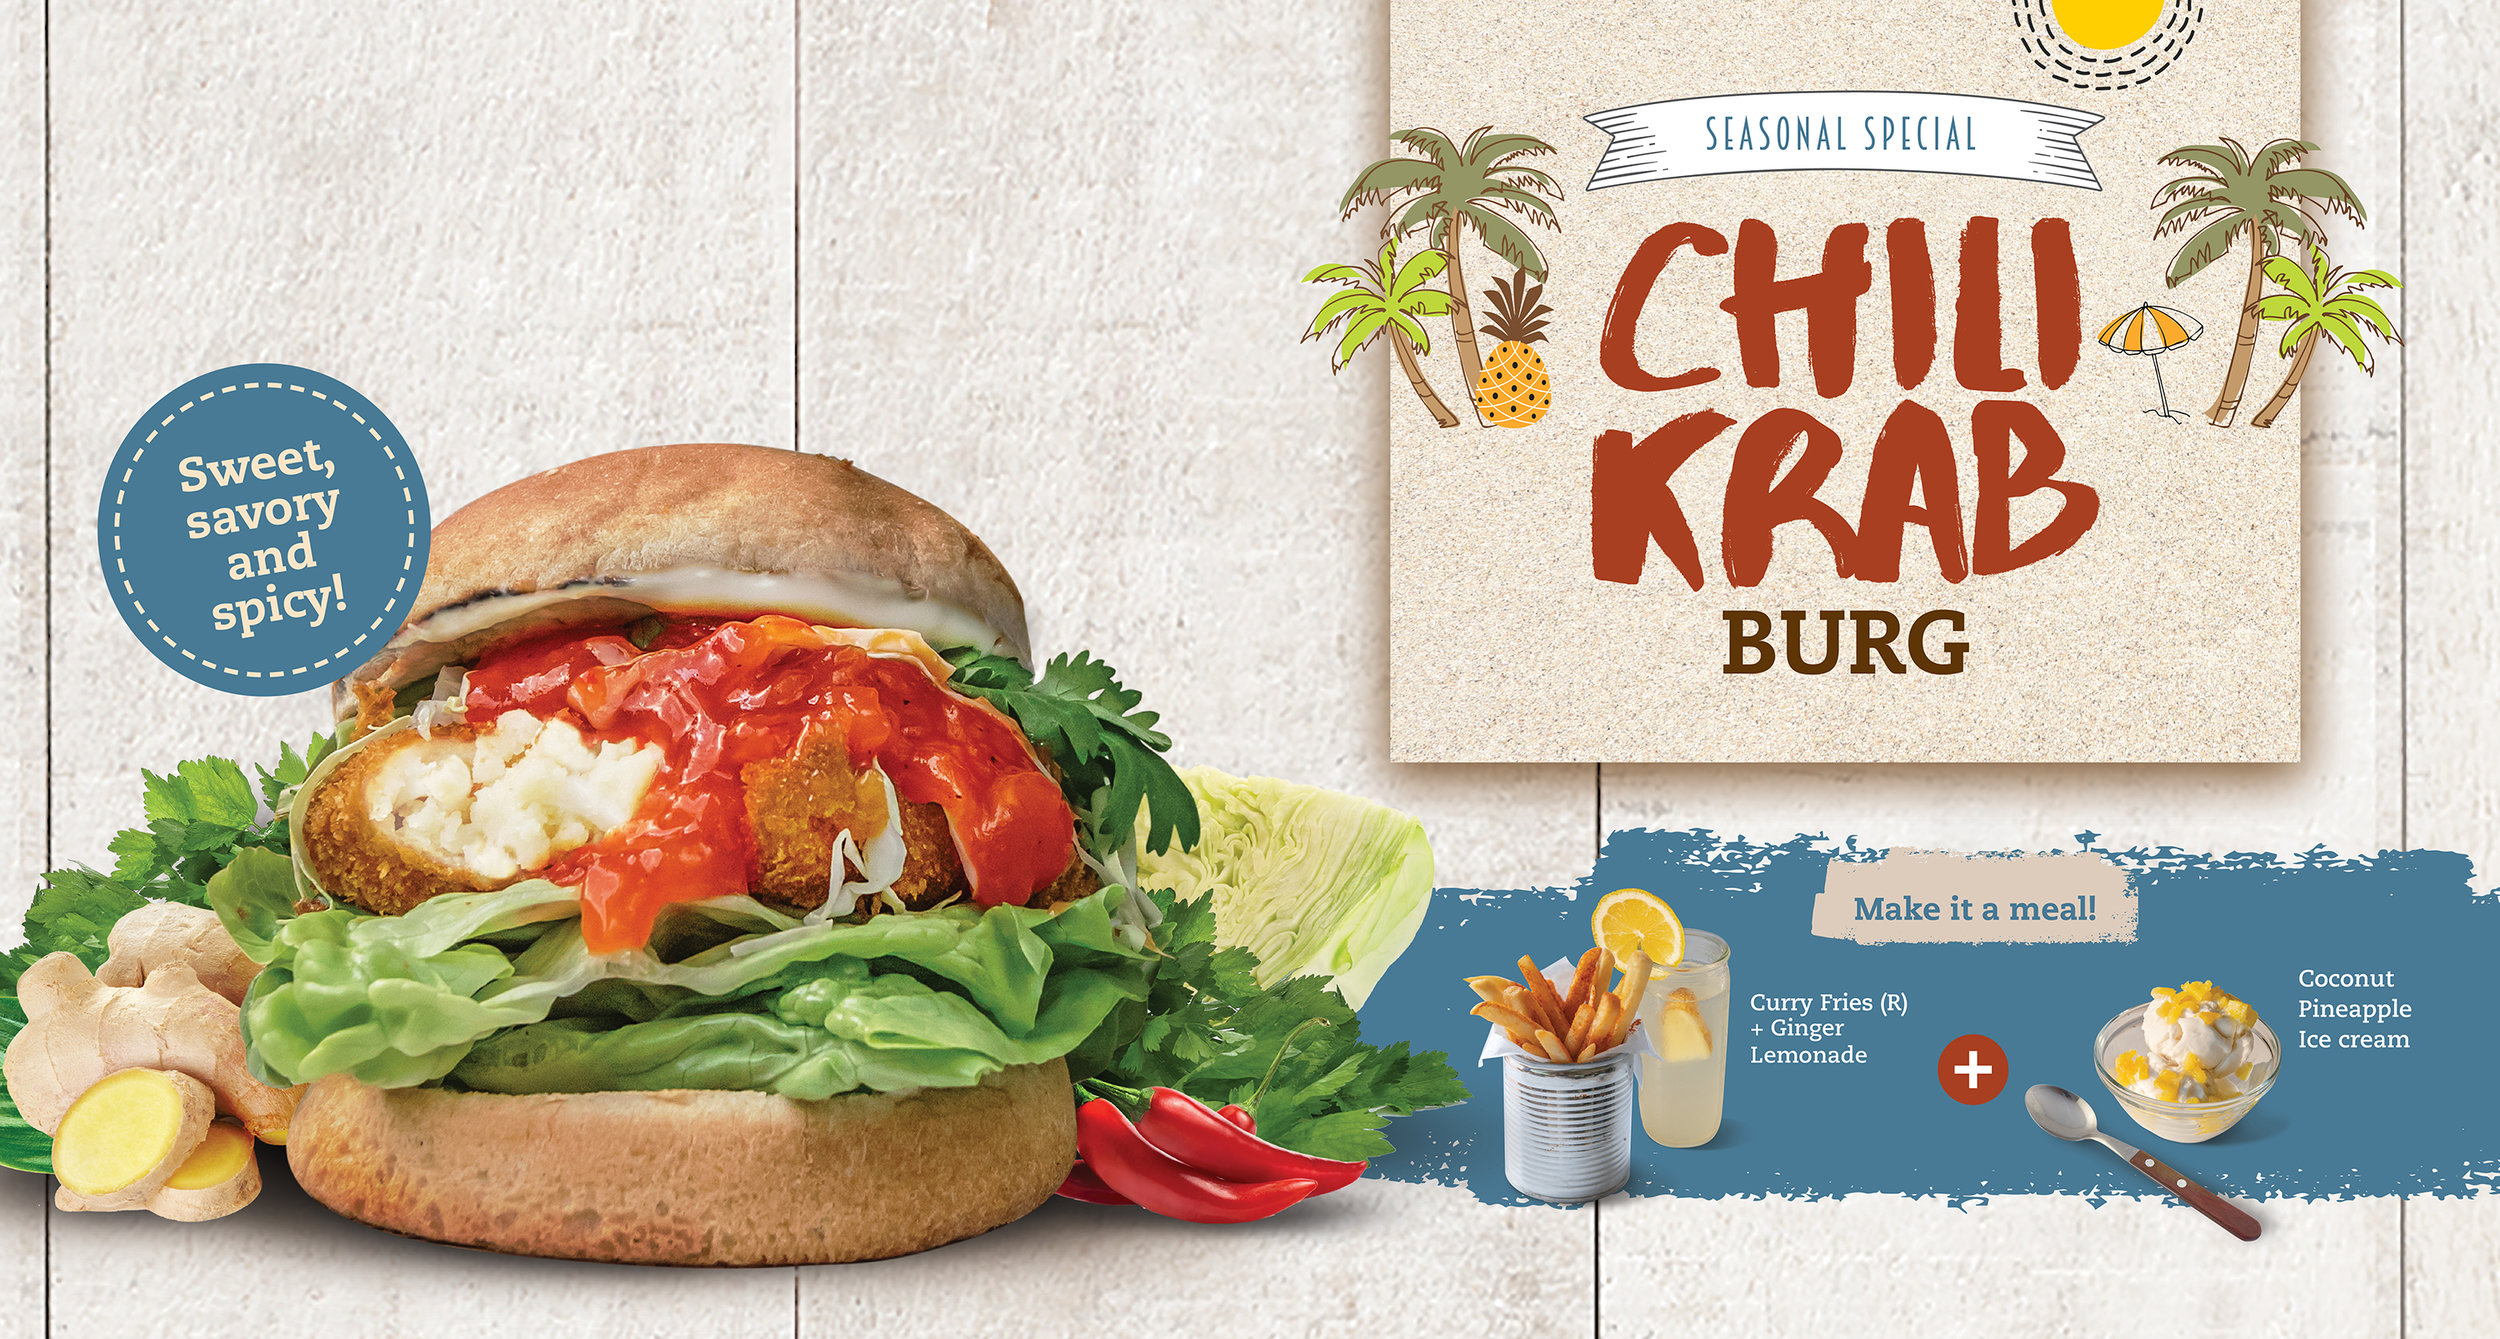 The Chili Krab Burg comes as a meal with Curry Fries, Ginger Lemonade and Coconut Pineapple Ice cream